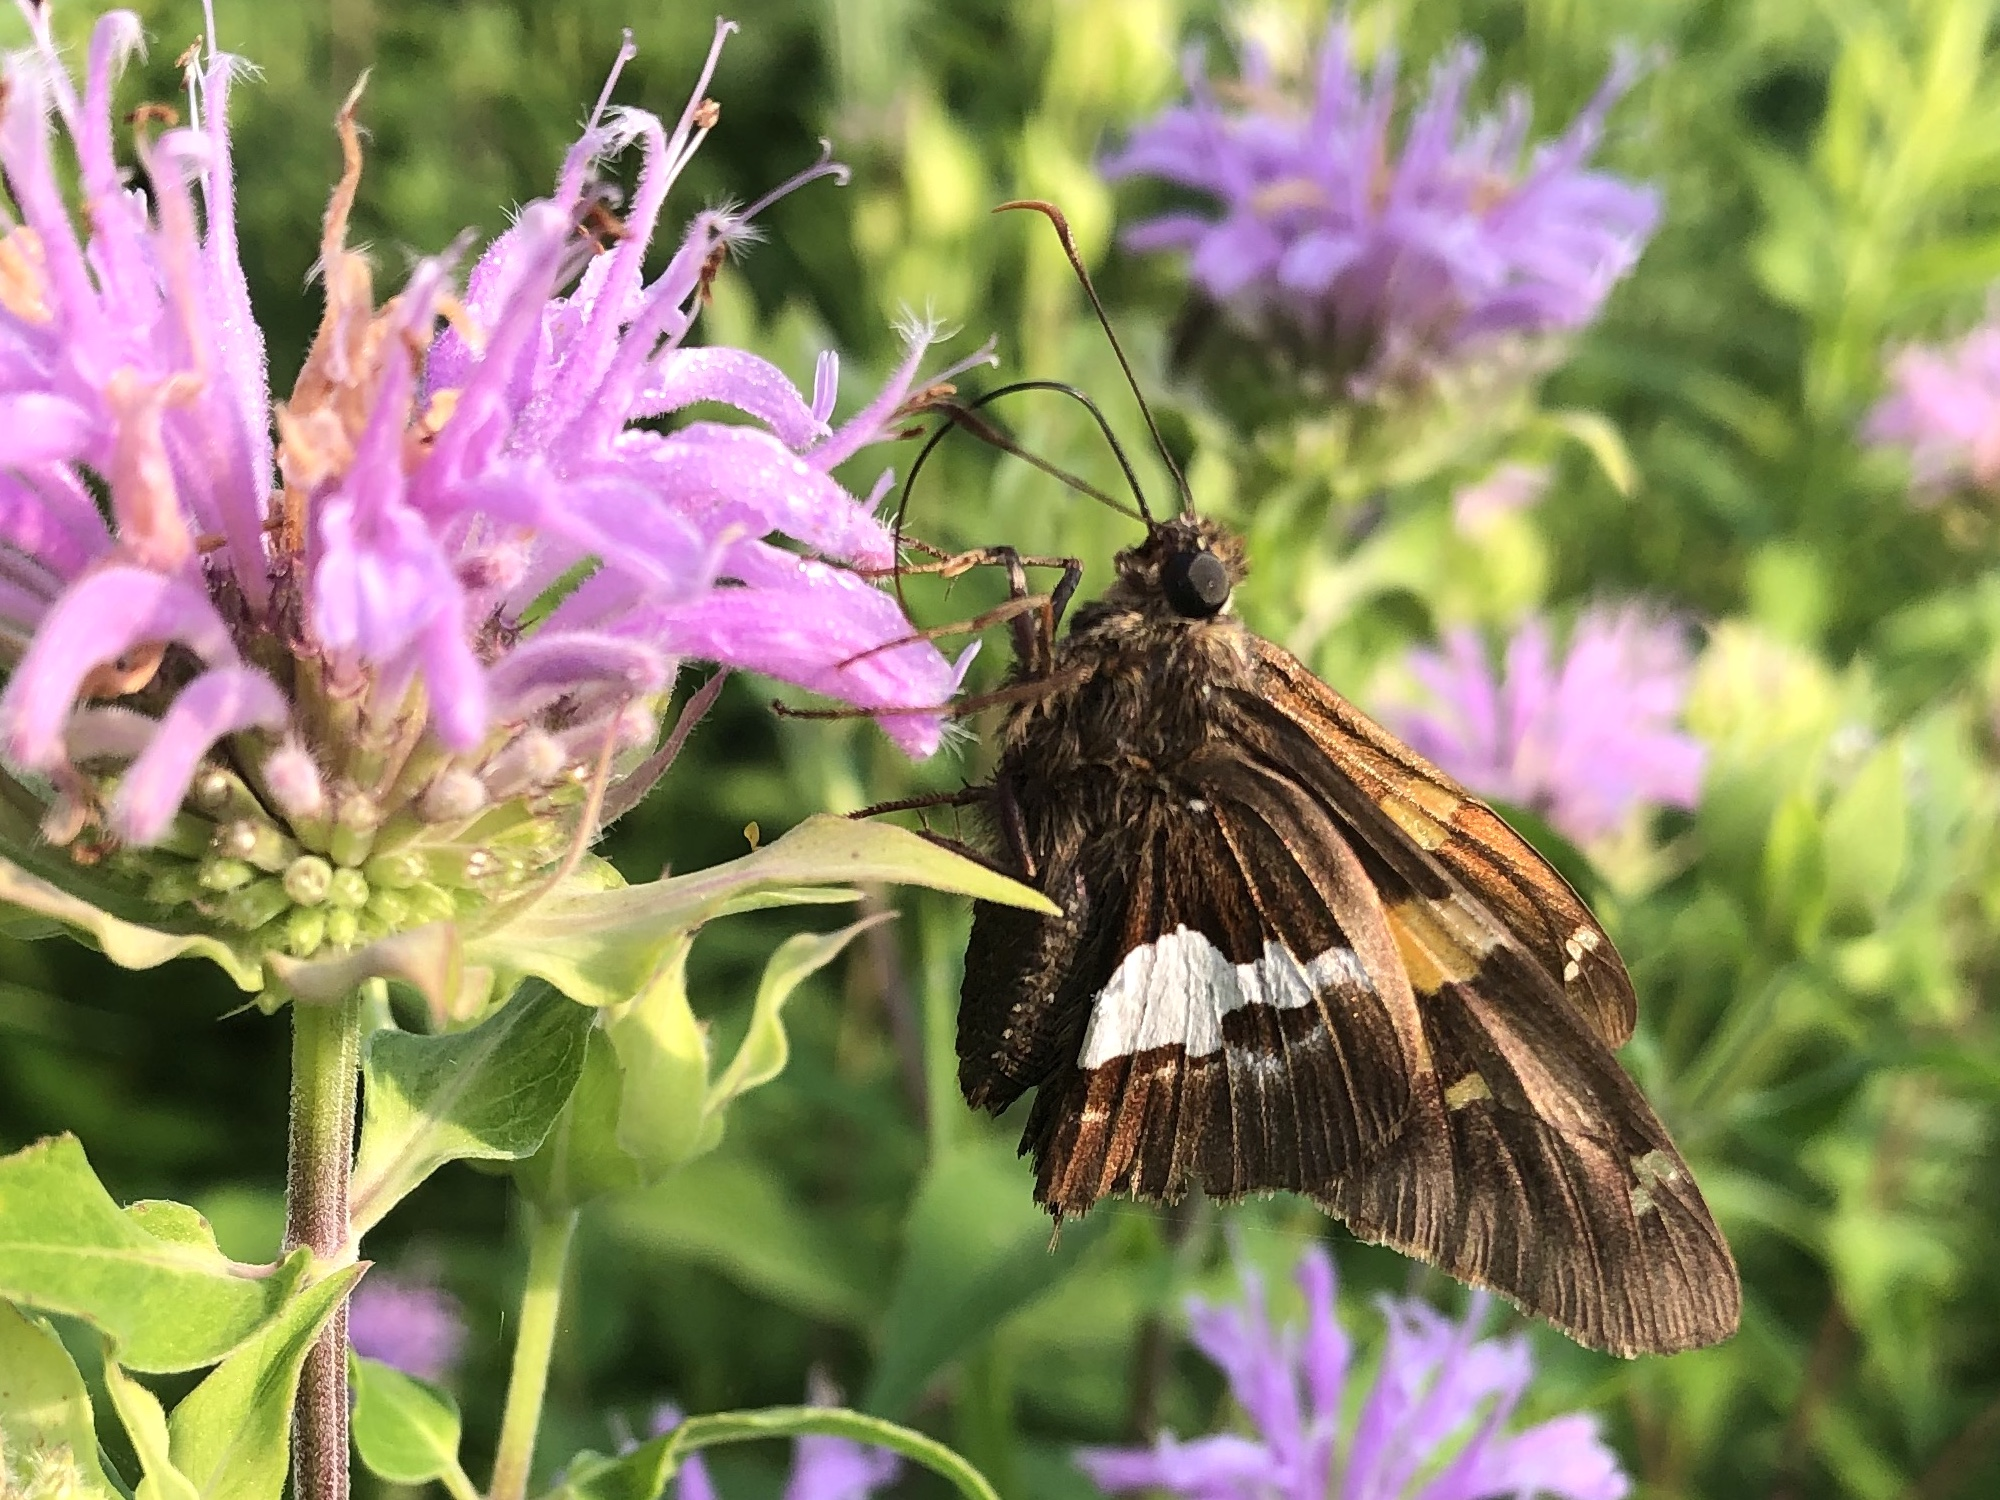 Silver Spotted Skipper on Bergamot on July 9, 2020.